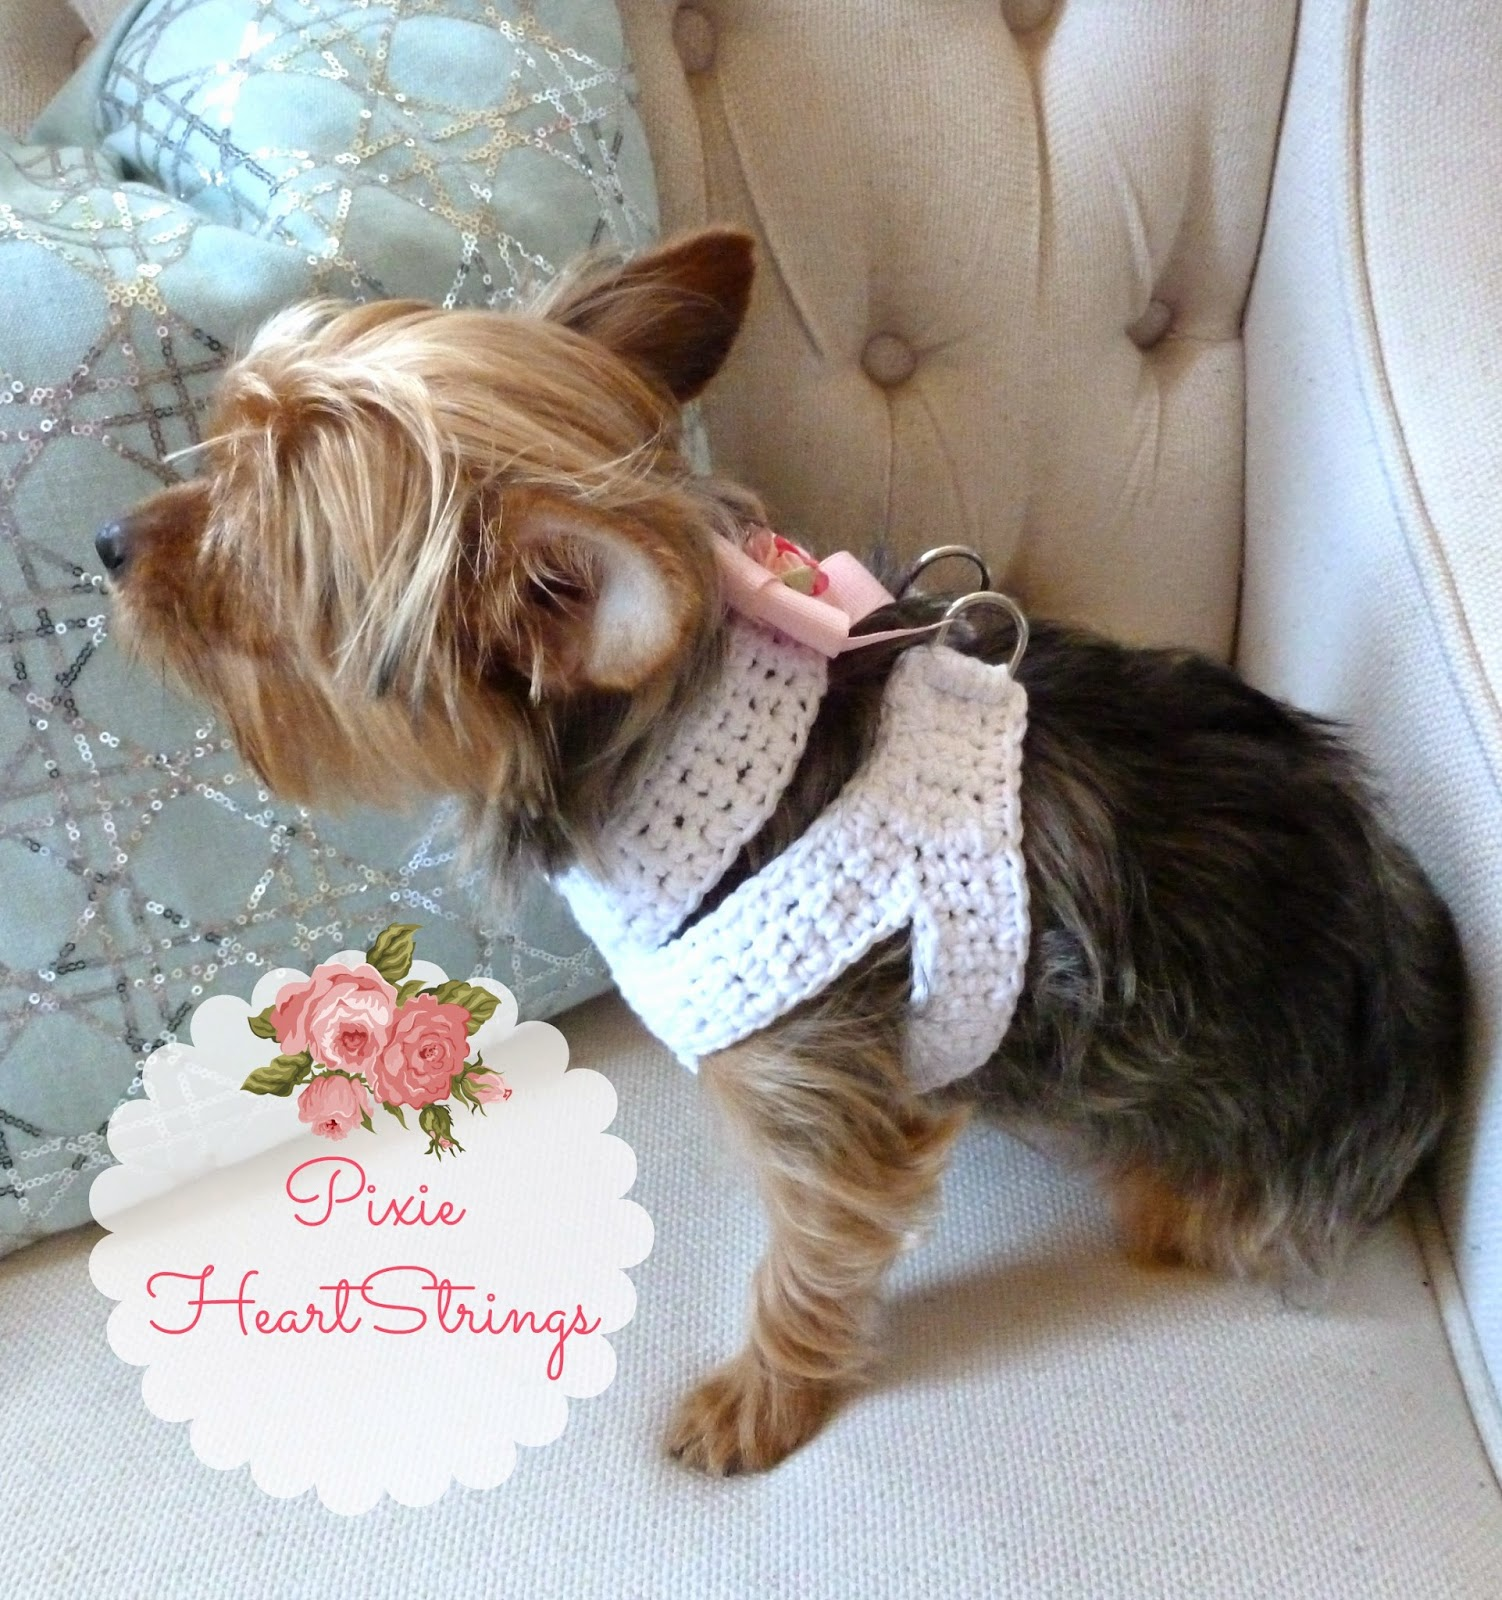 Free Crochet Pattern For Dog Harness : Pixie HeartStrings: A Crocheted Dog Harness for Your Tiny ...